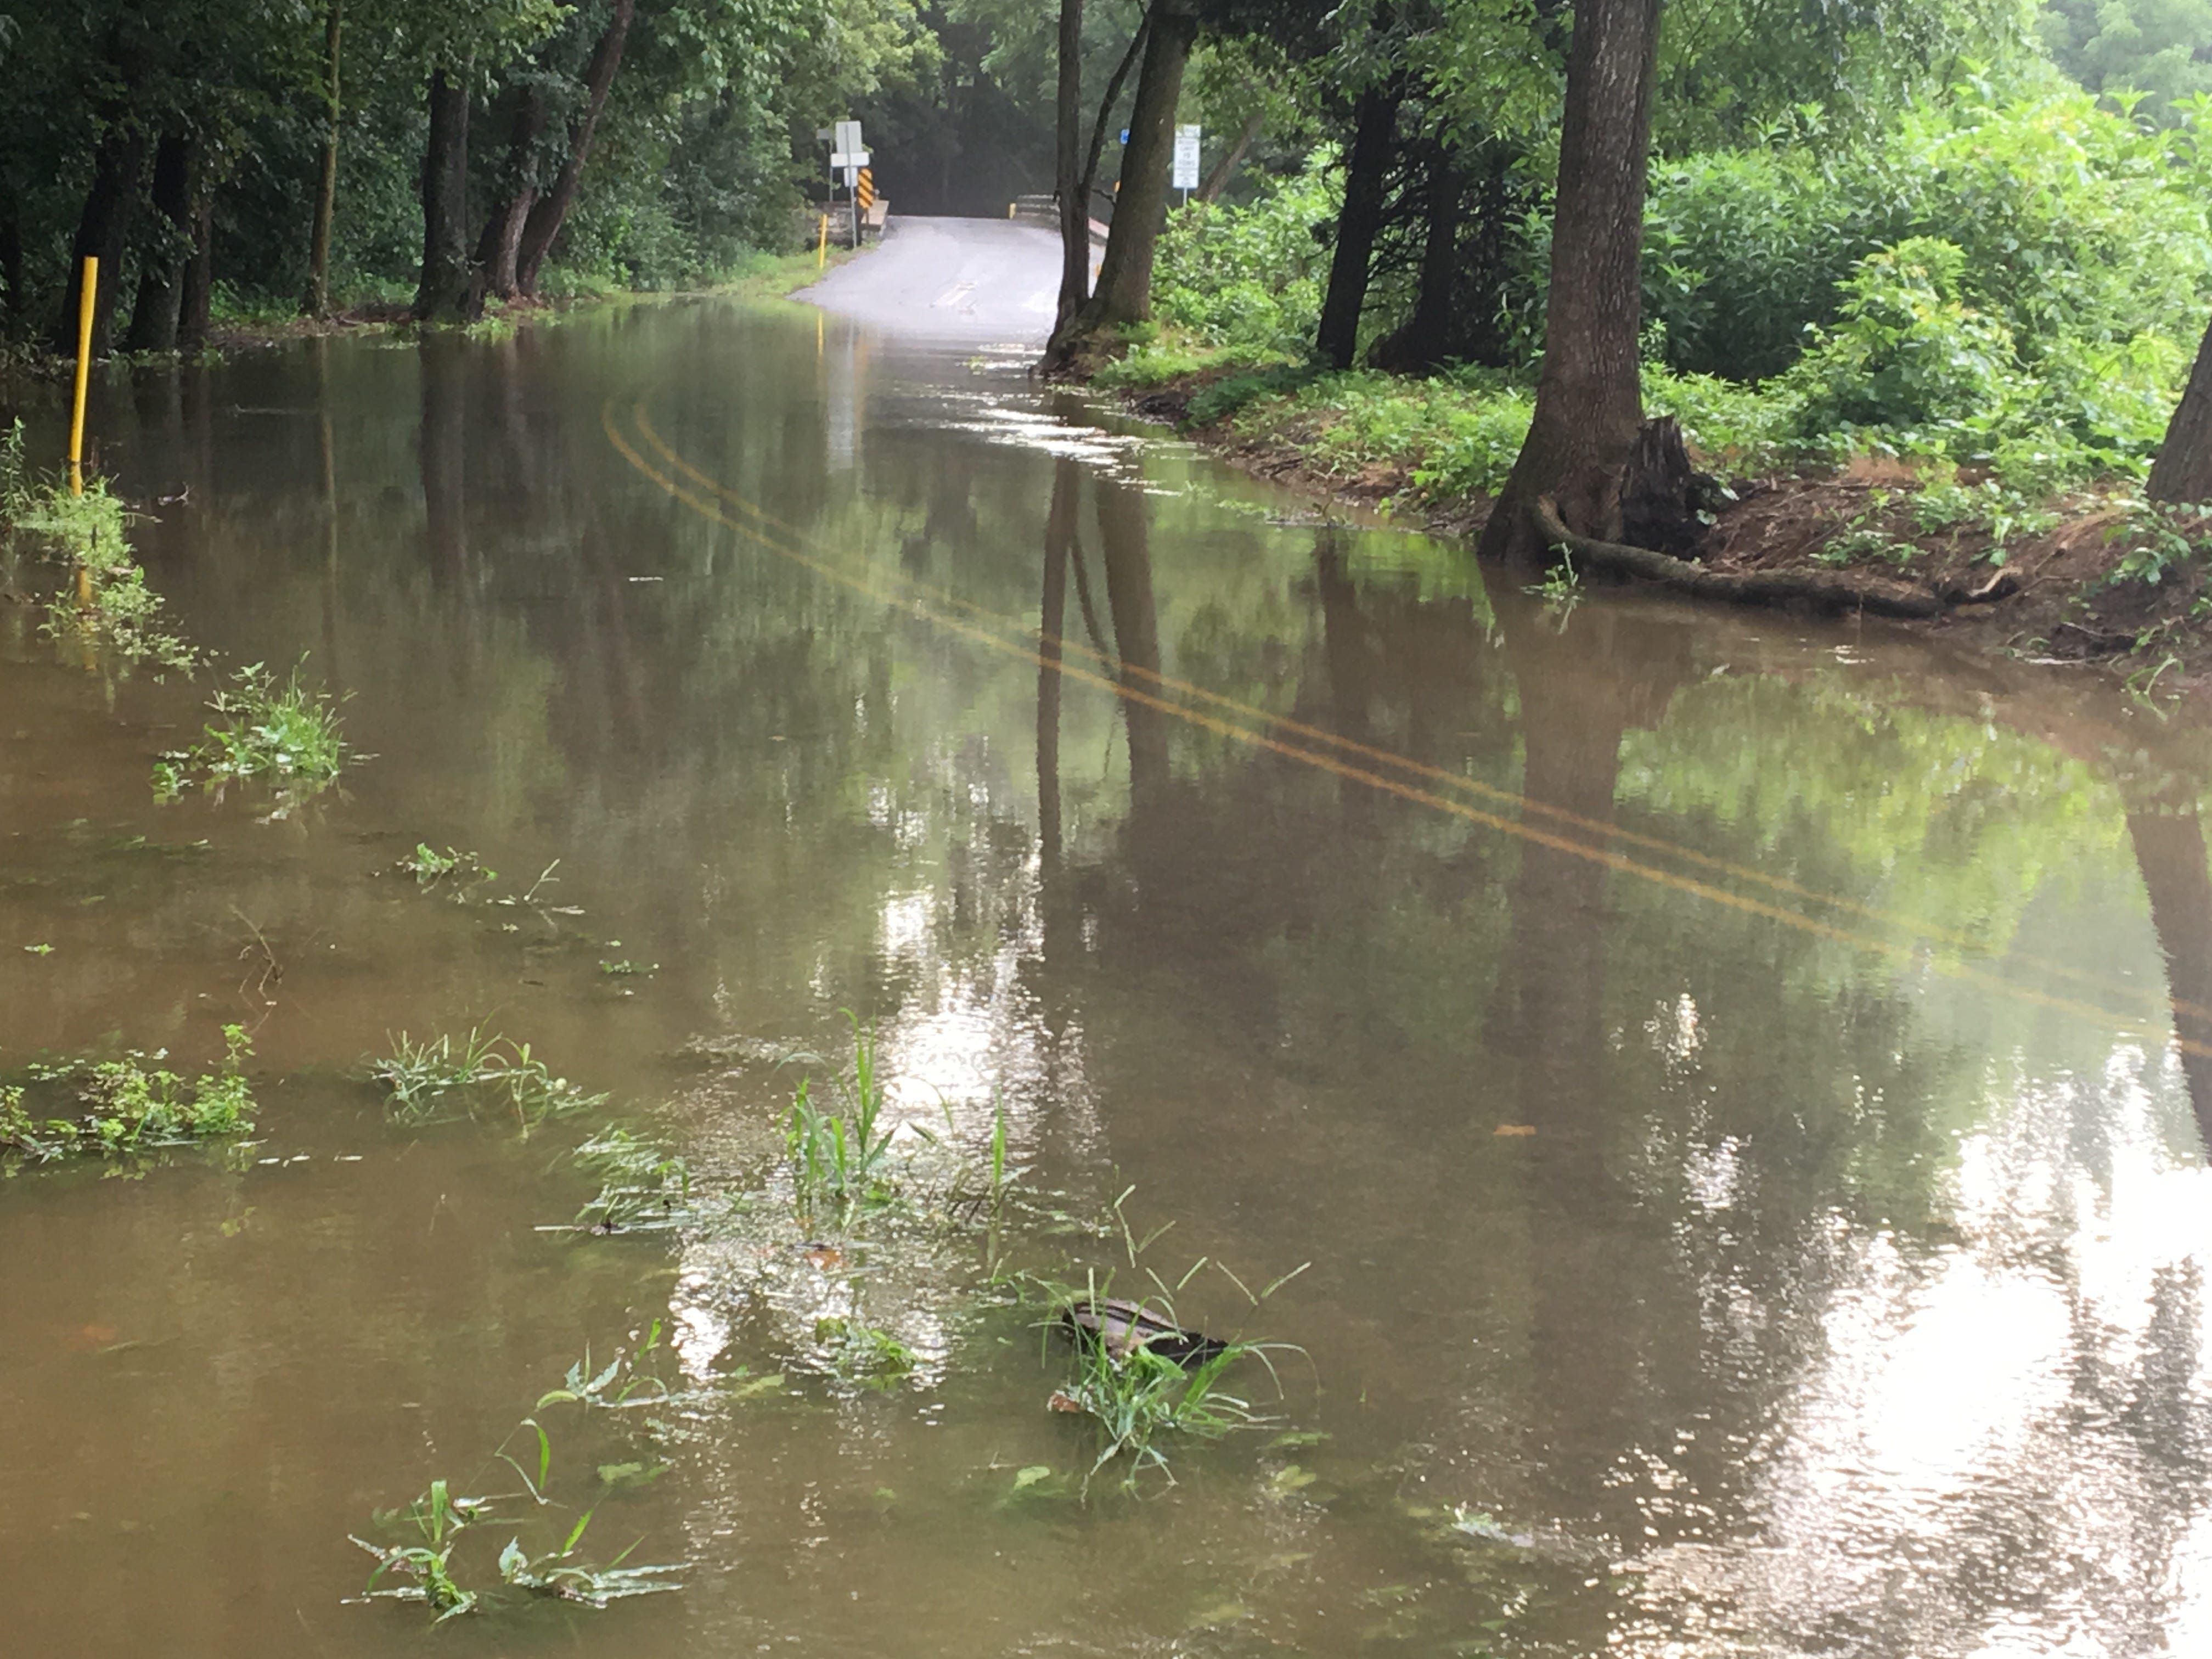 The Conodoguinet Creek flows over Hickory Run Road on Thursday morning. More rain is forecast this week.